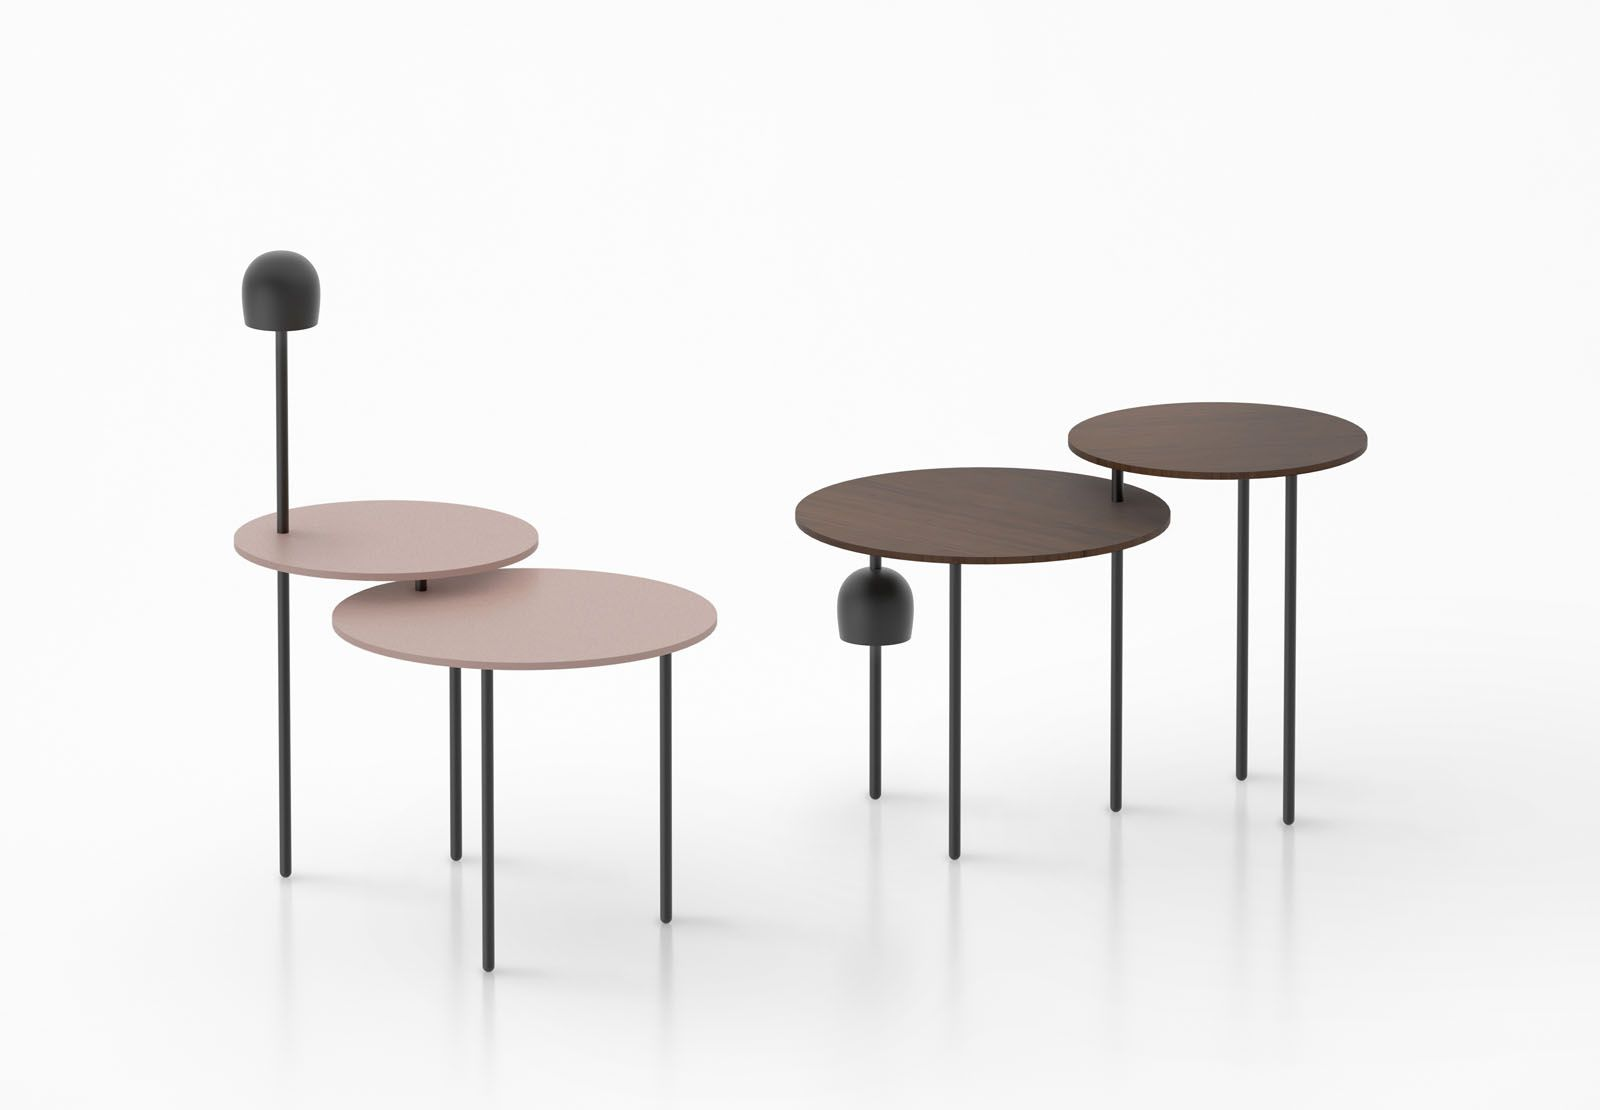 Flos Haeru table and lamp collection by Nendo, from Space Furniture